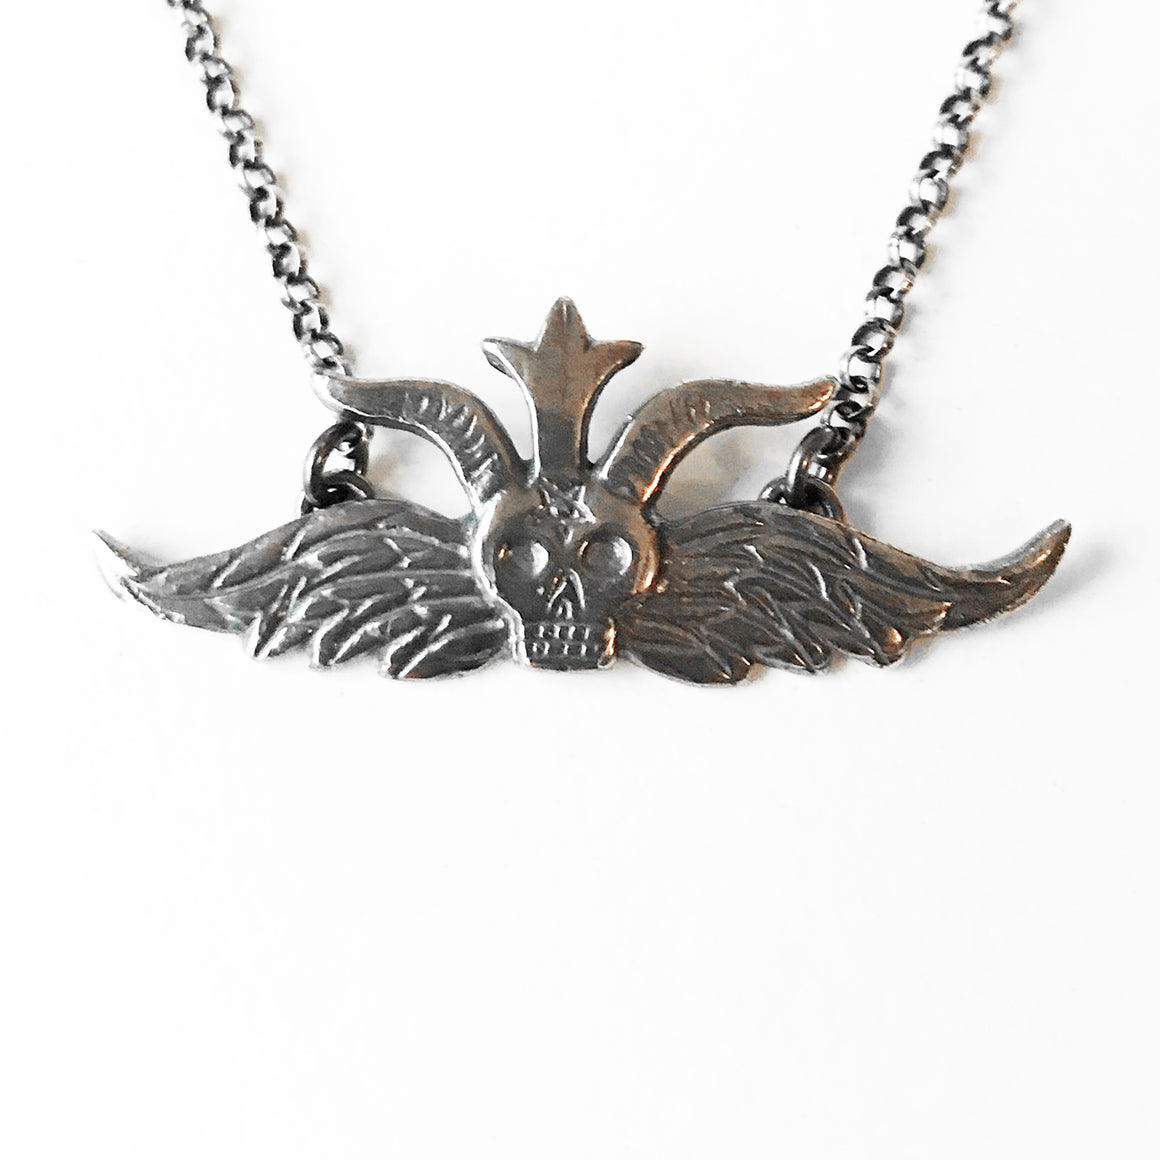 Jewelry - The Satanic Temple